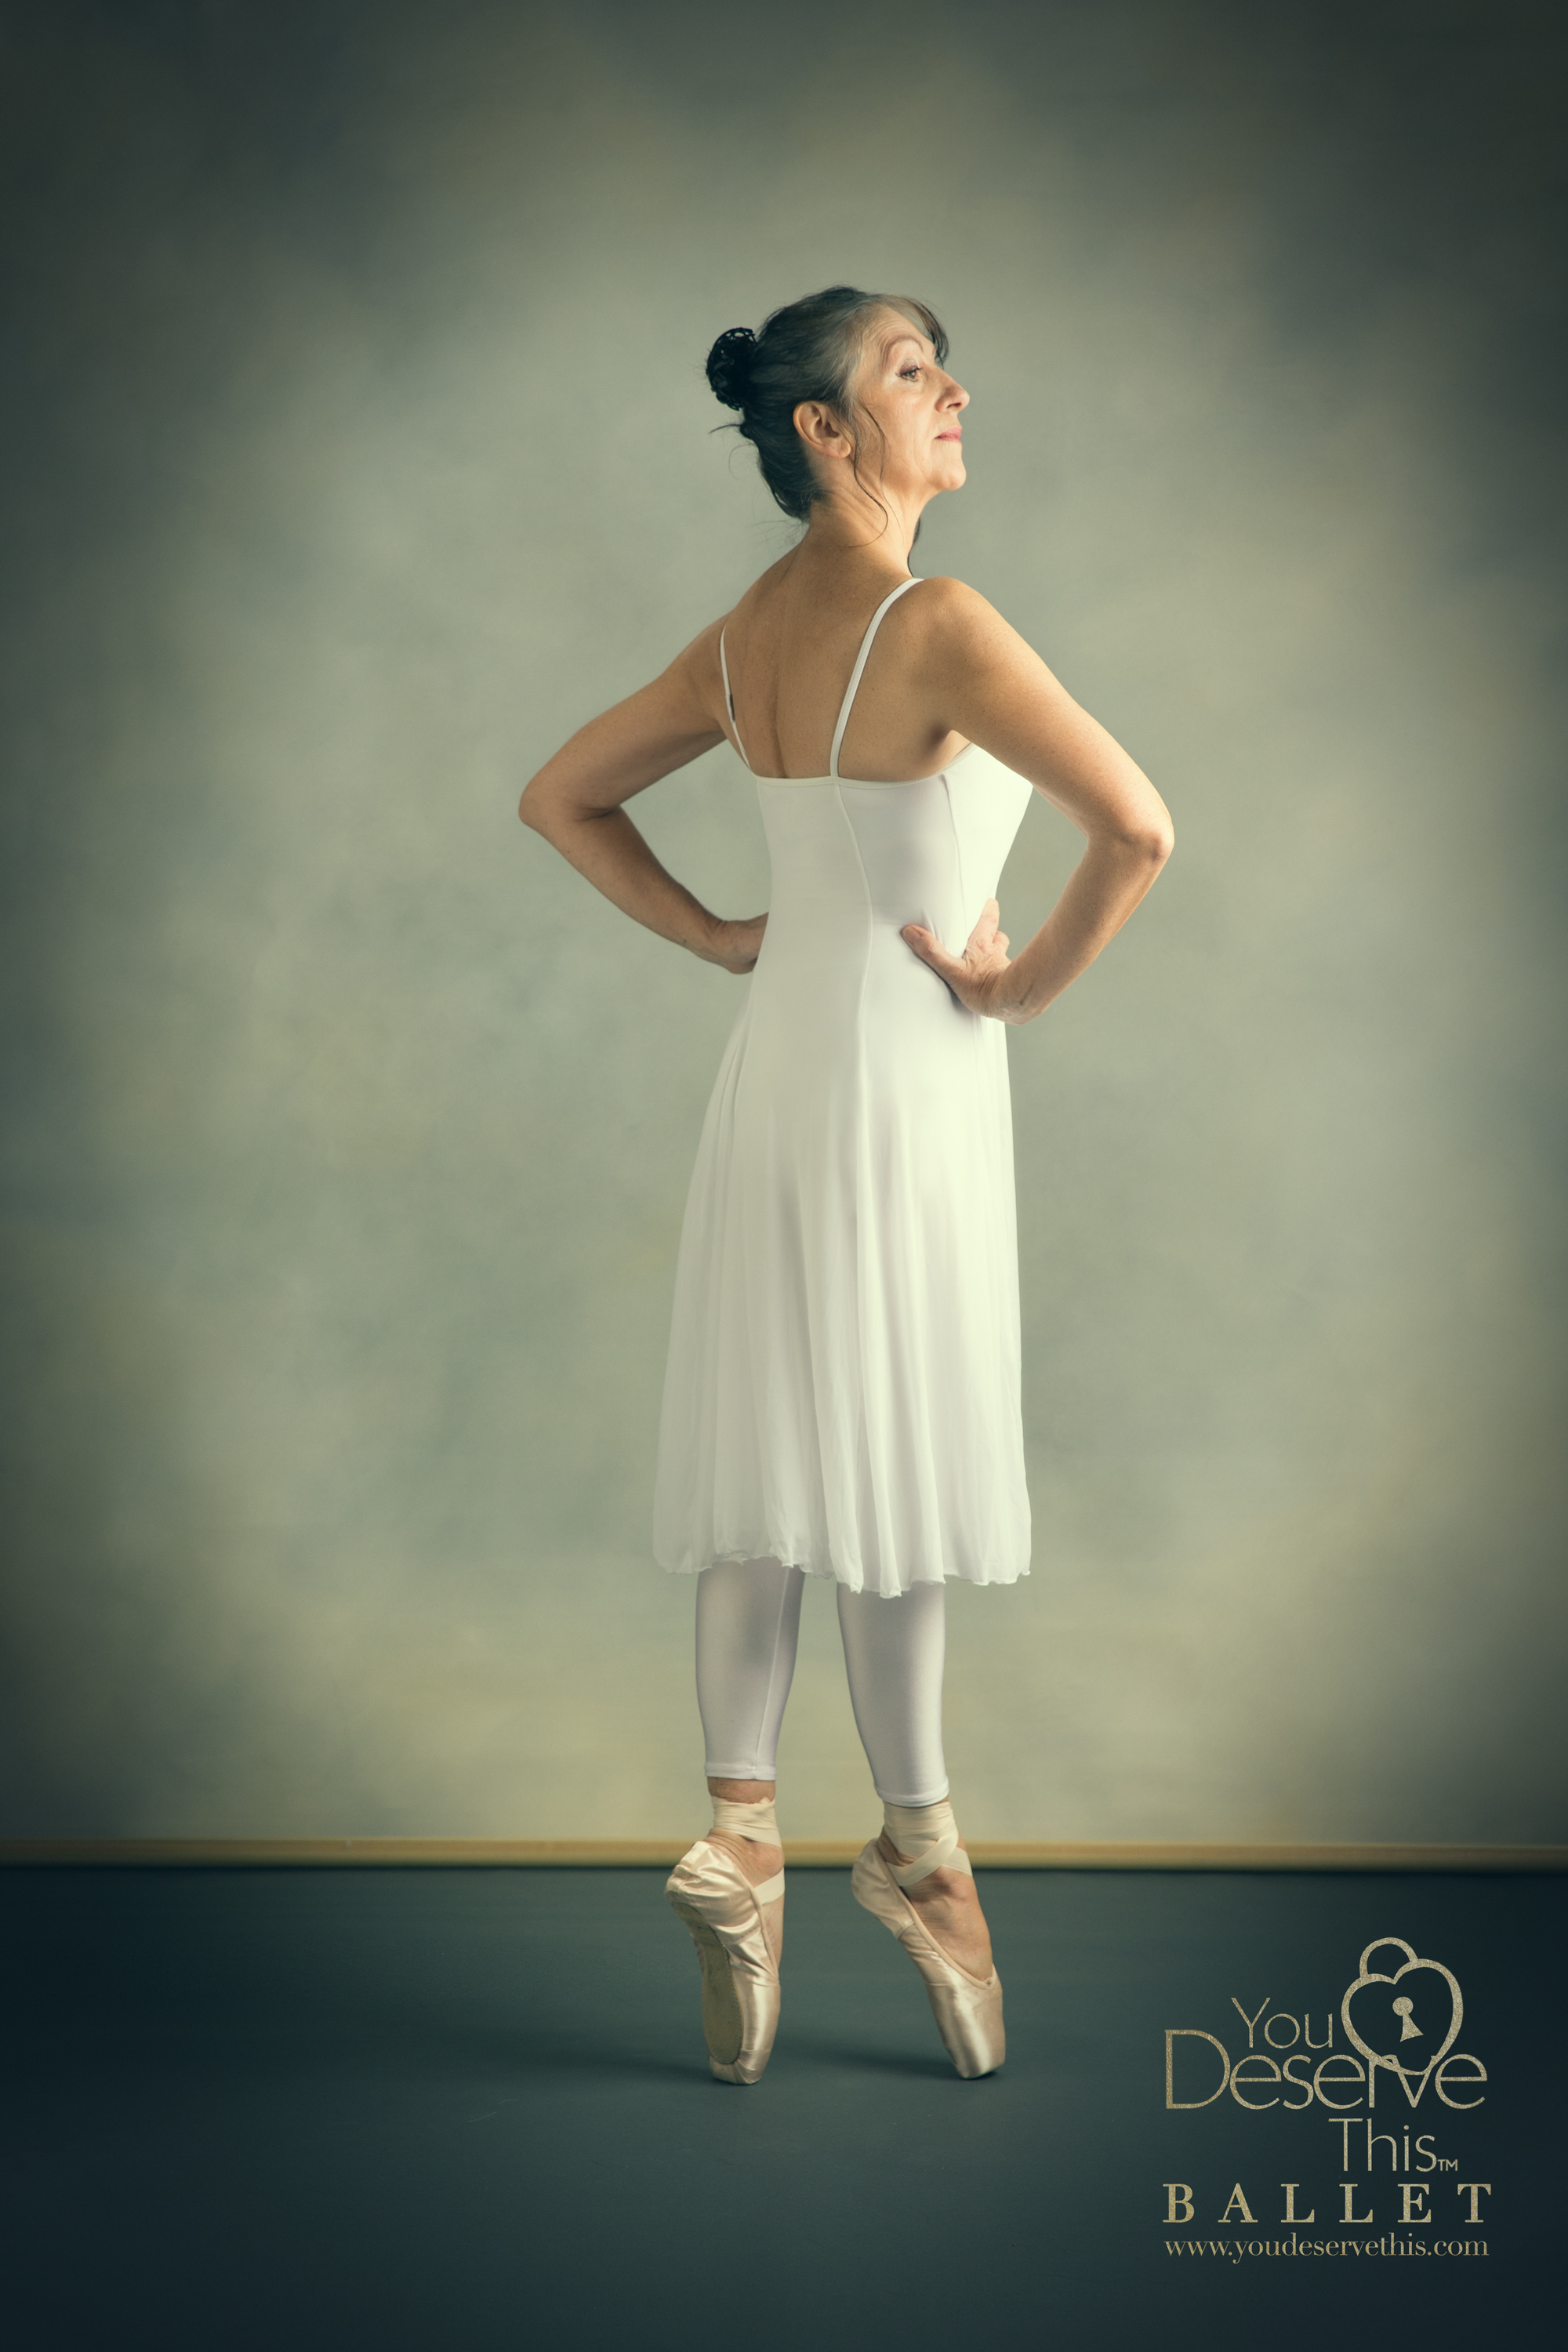 Such grace and poise, beautiful dancing photograph www.youdeservethis.com